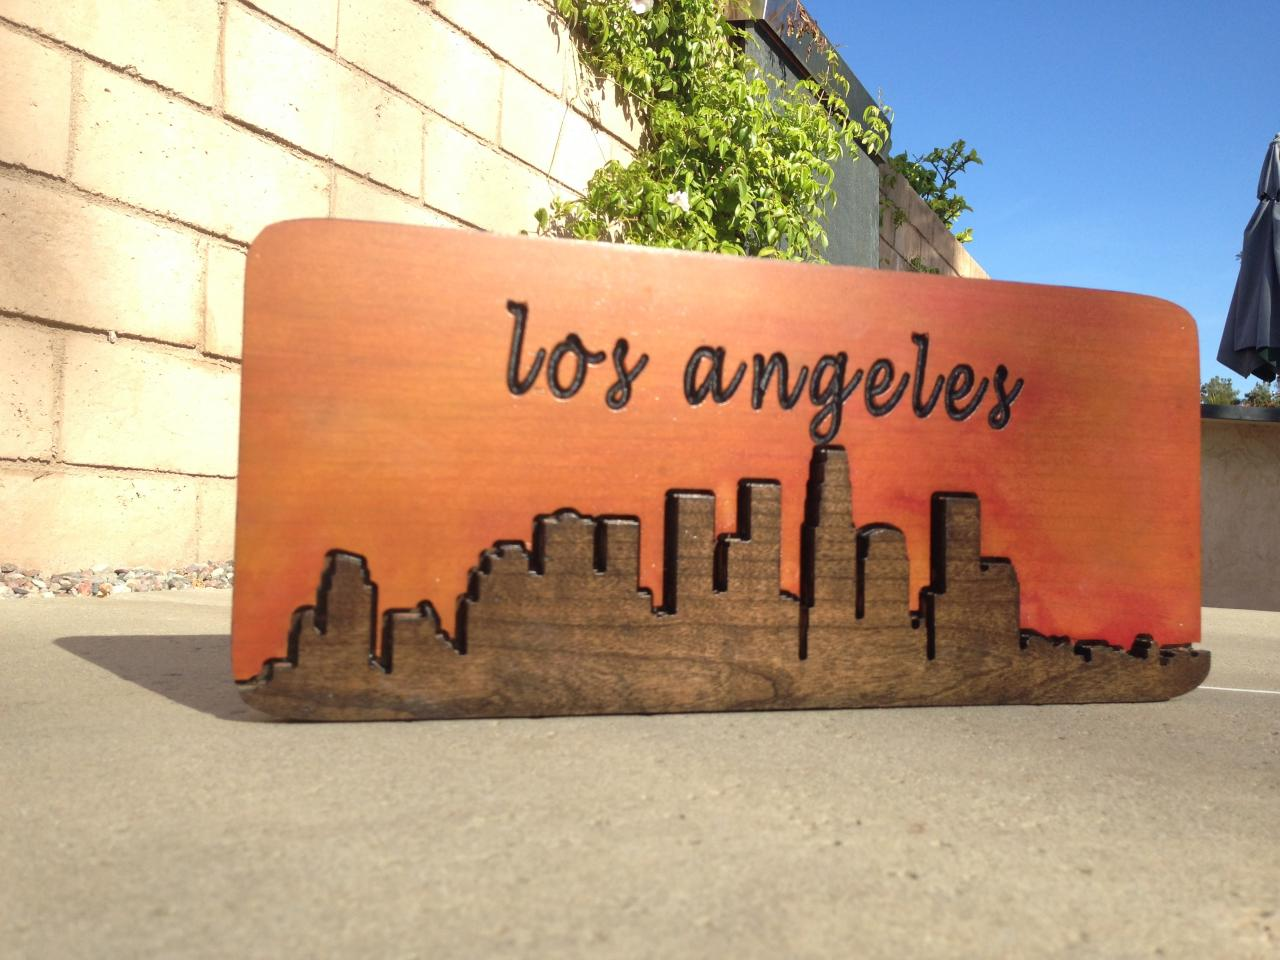 Los Angeles Wall Art downtown los angeles city scape - hand made wood sign - wood wall